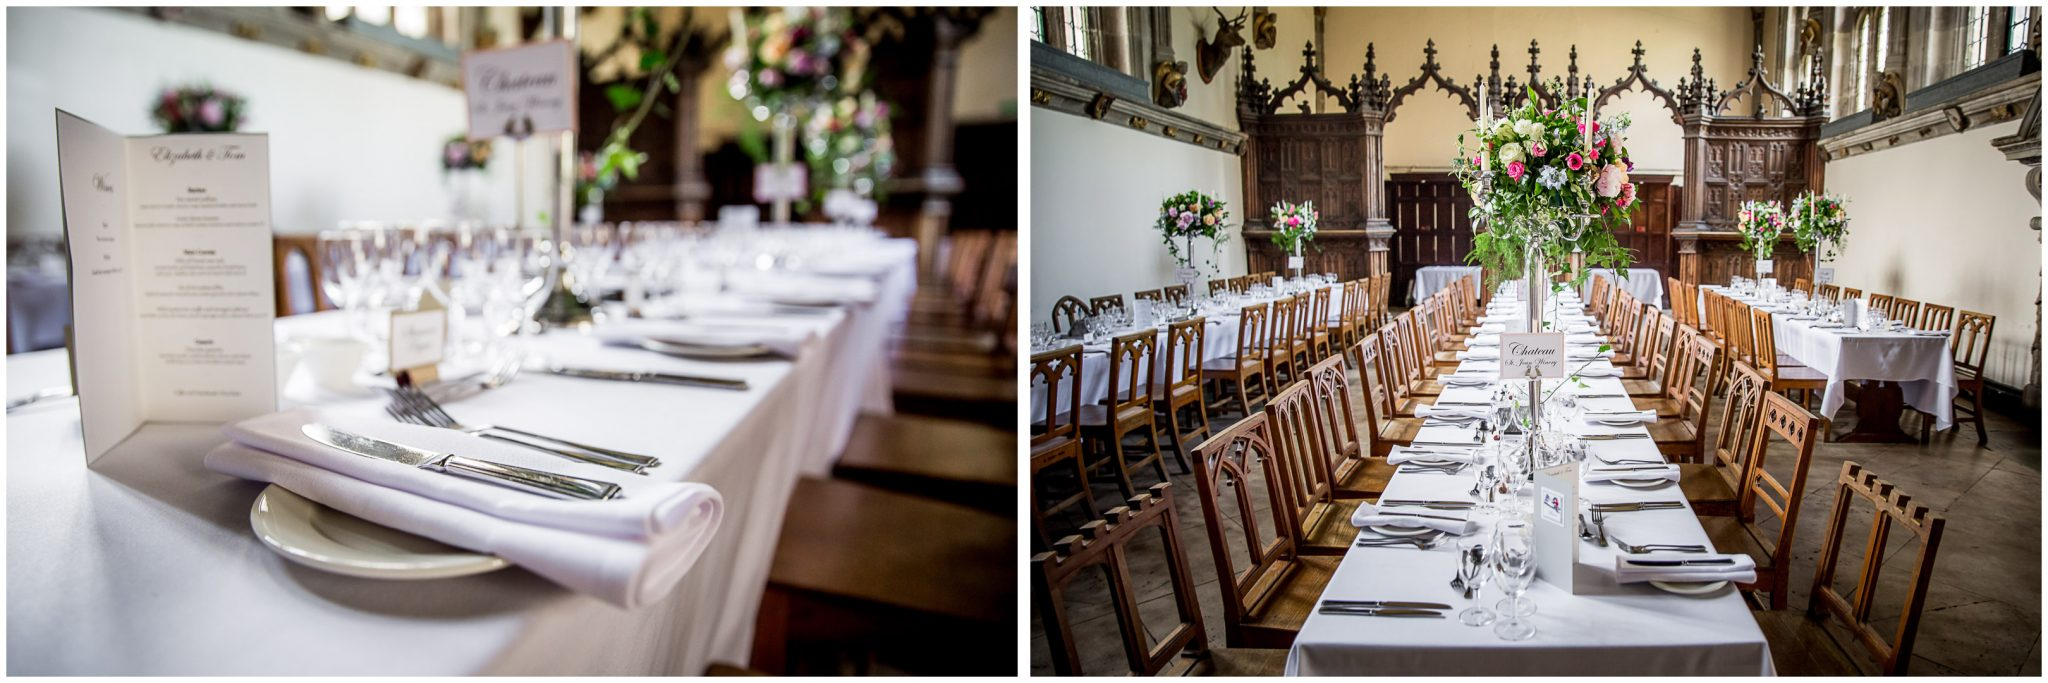 The dining room at Milton Abbey school set up in a banqueting style for the wedding breakfast